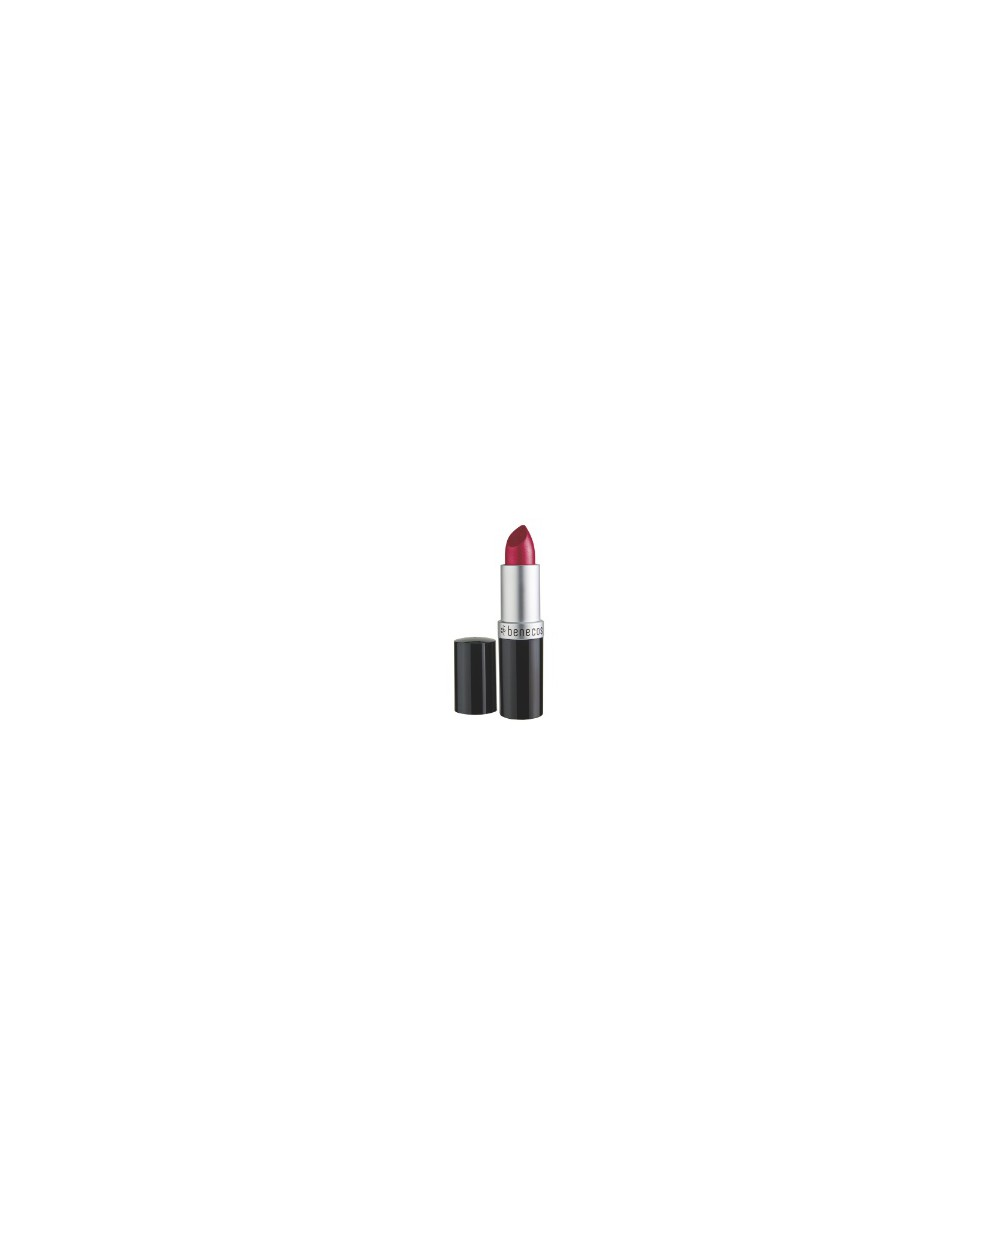 Benecos - Rossetto Naturale - Marry me